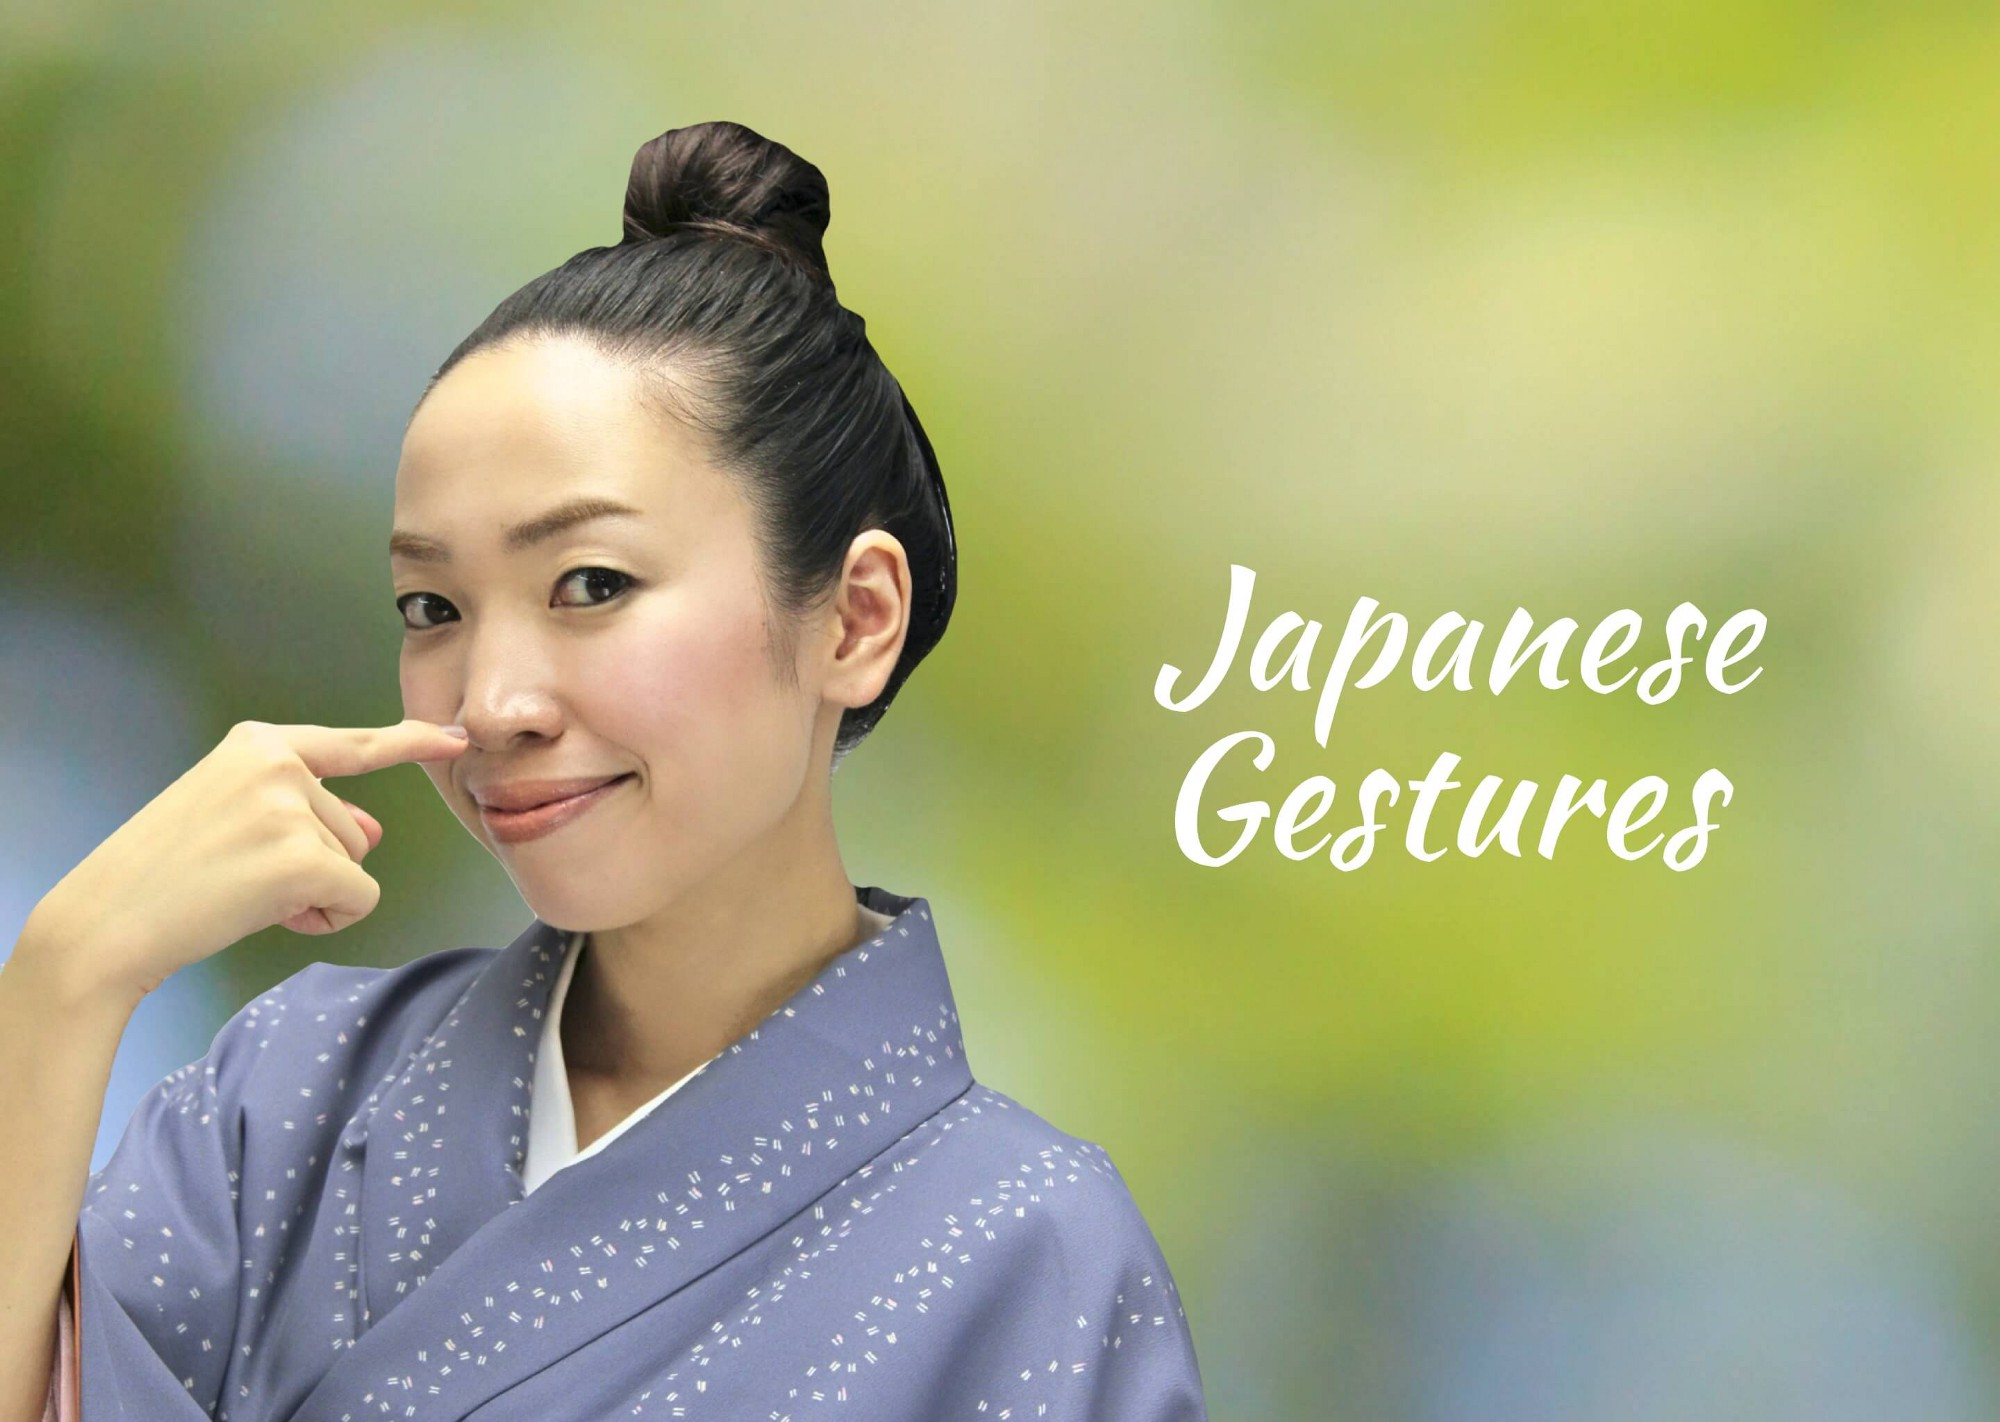 """Woman performing the Japanese gesture for """"me"""" in front of a blurred outdoor background."""